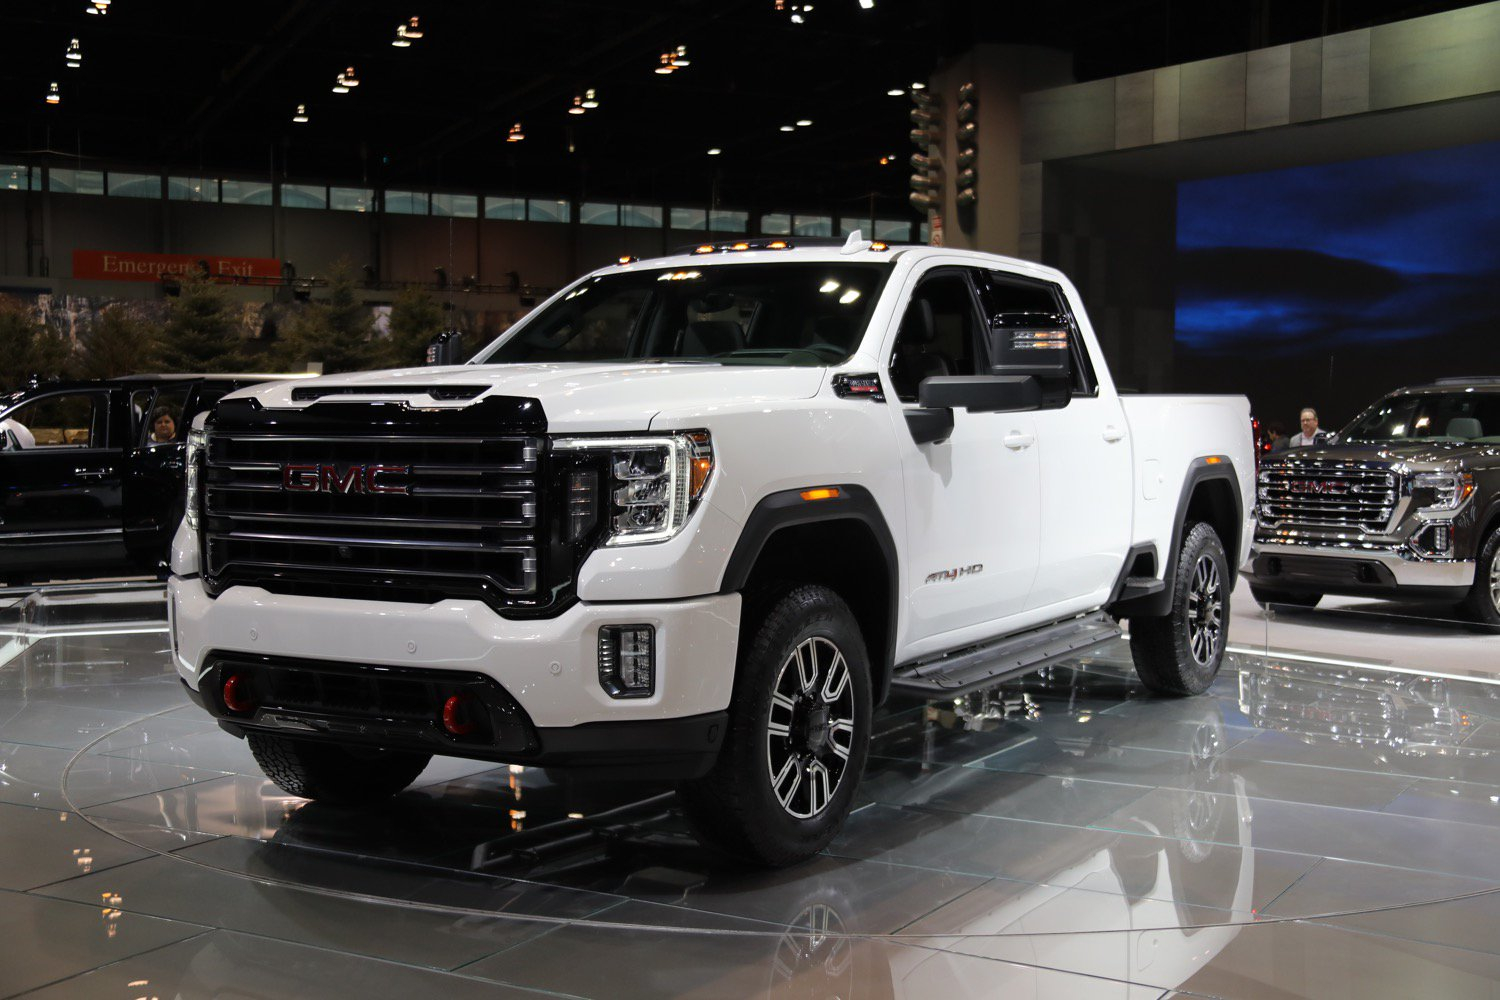 2020 Sierra At4 Hd: Live Photo Gallery | Gm Authority 2020 Gmc Sierra 2500Hd At4 Price, Colors, Specs